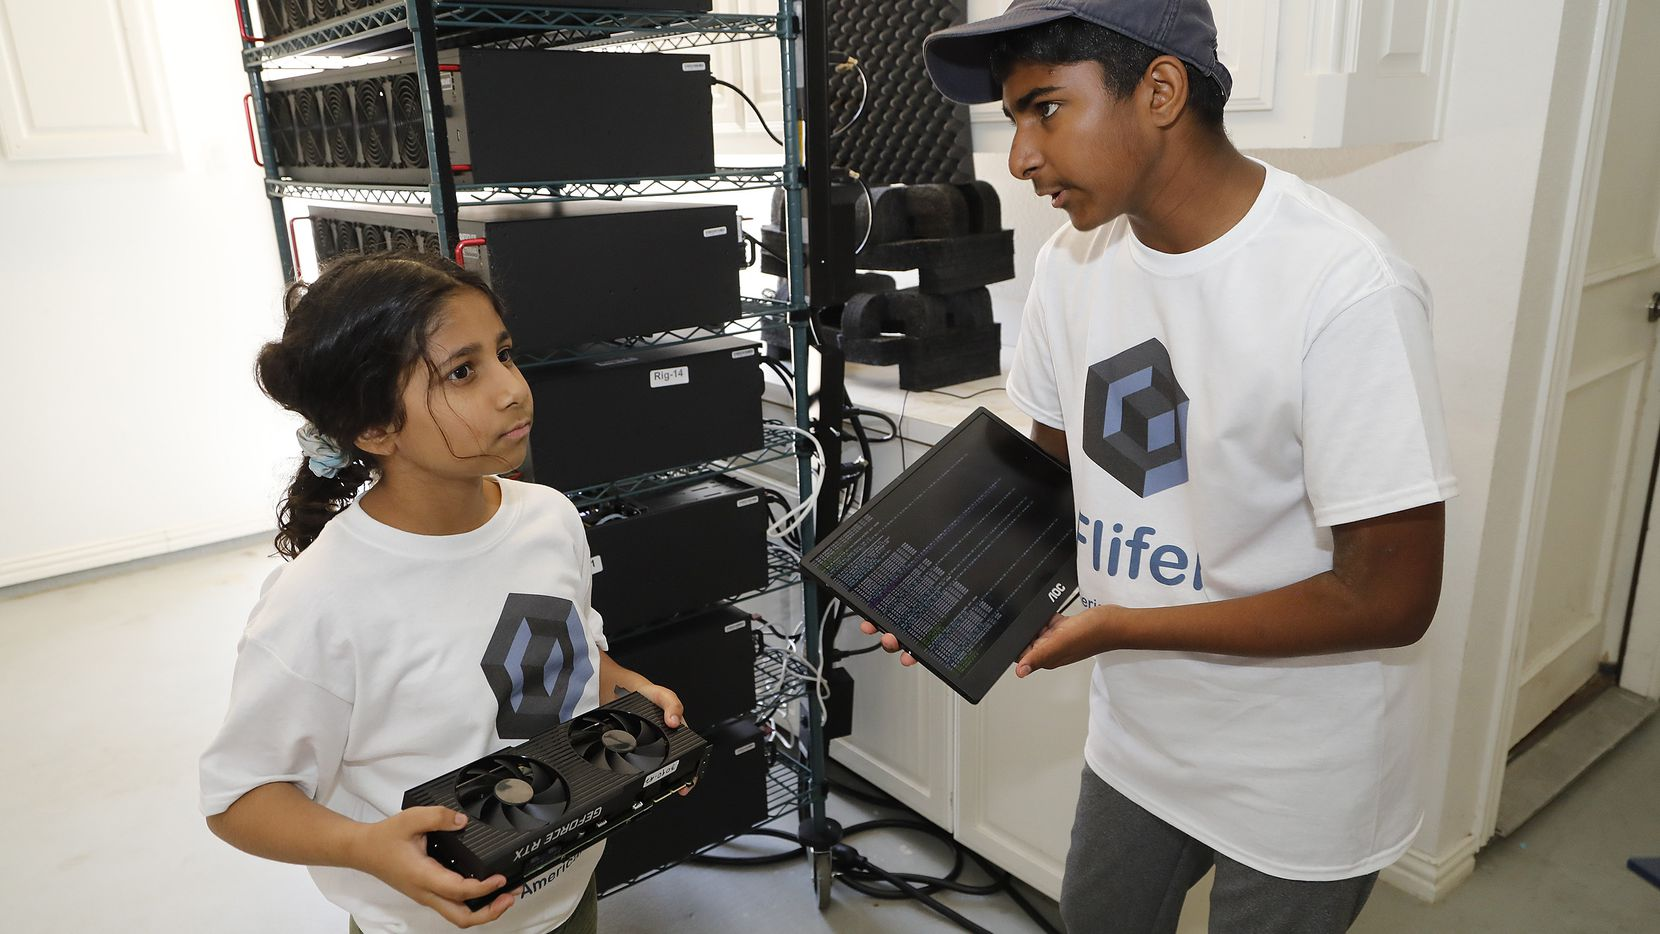 Frisco residents Aanya Thakur, 9, and her brother Ishaan, 14, discuss the computer equipment they use to mine cryptocurrency out of their garage.